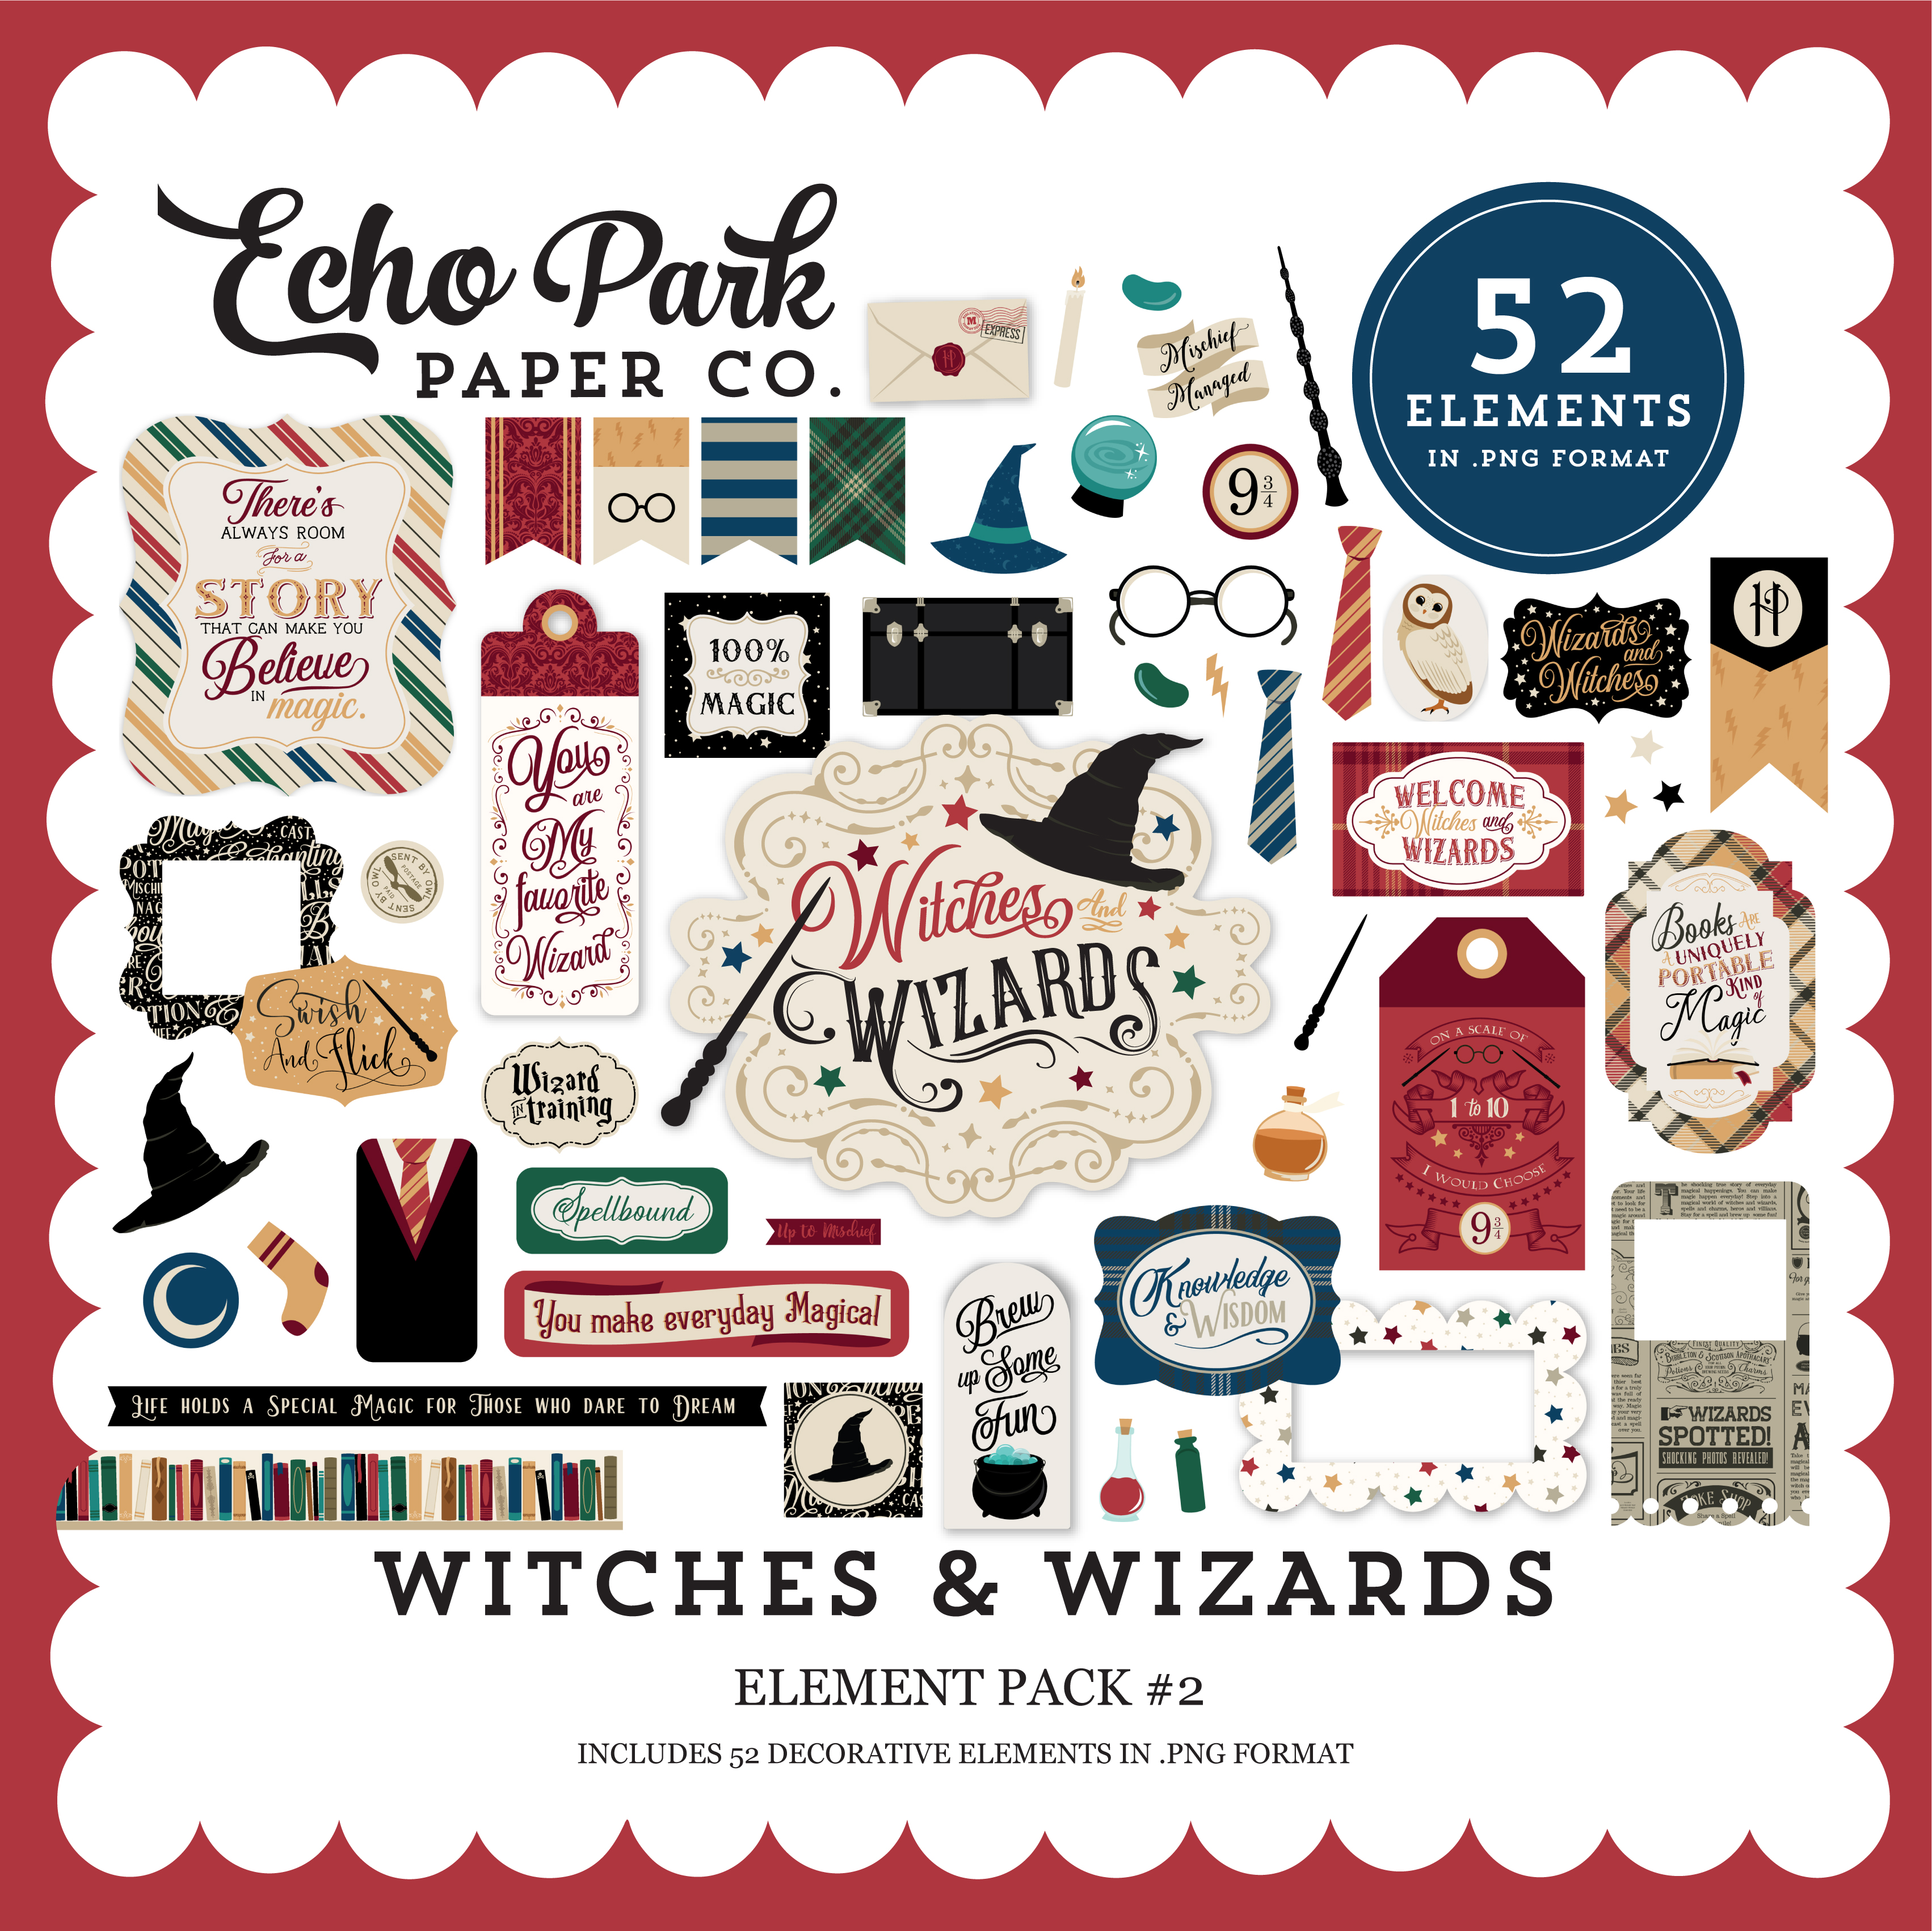 Witches & Wizards Element Pack #2